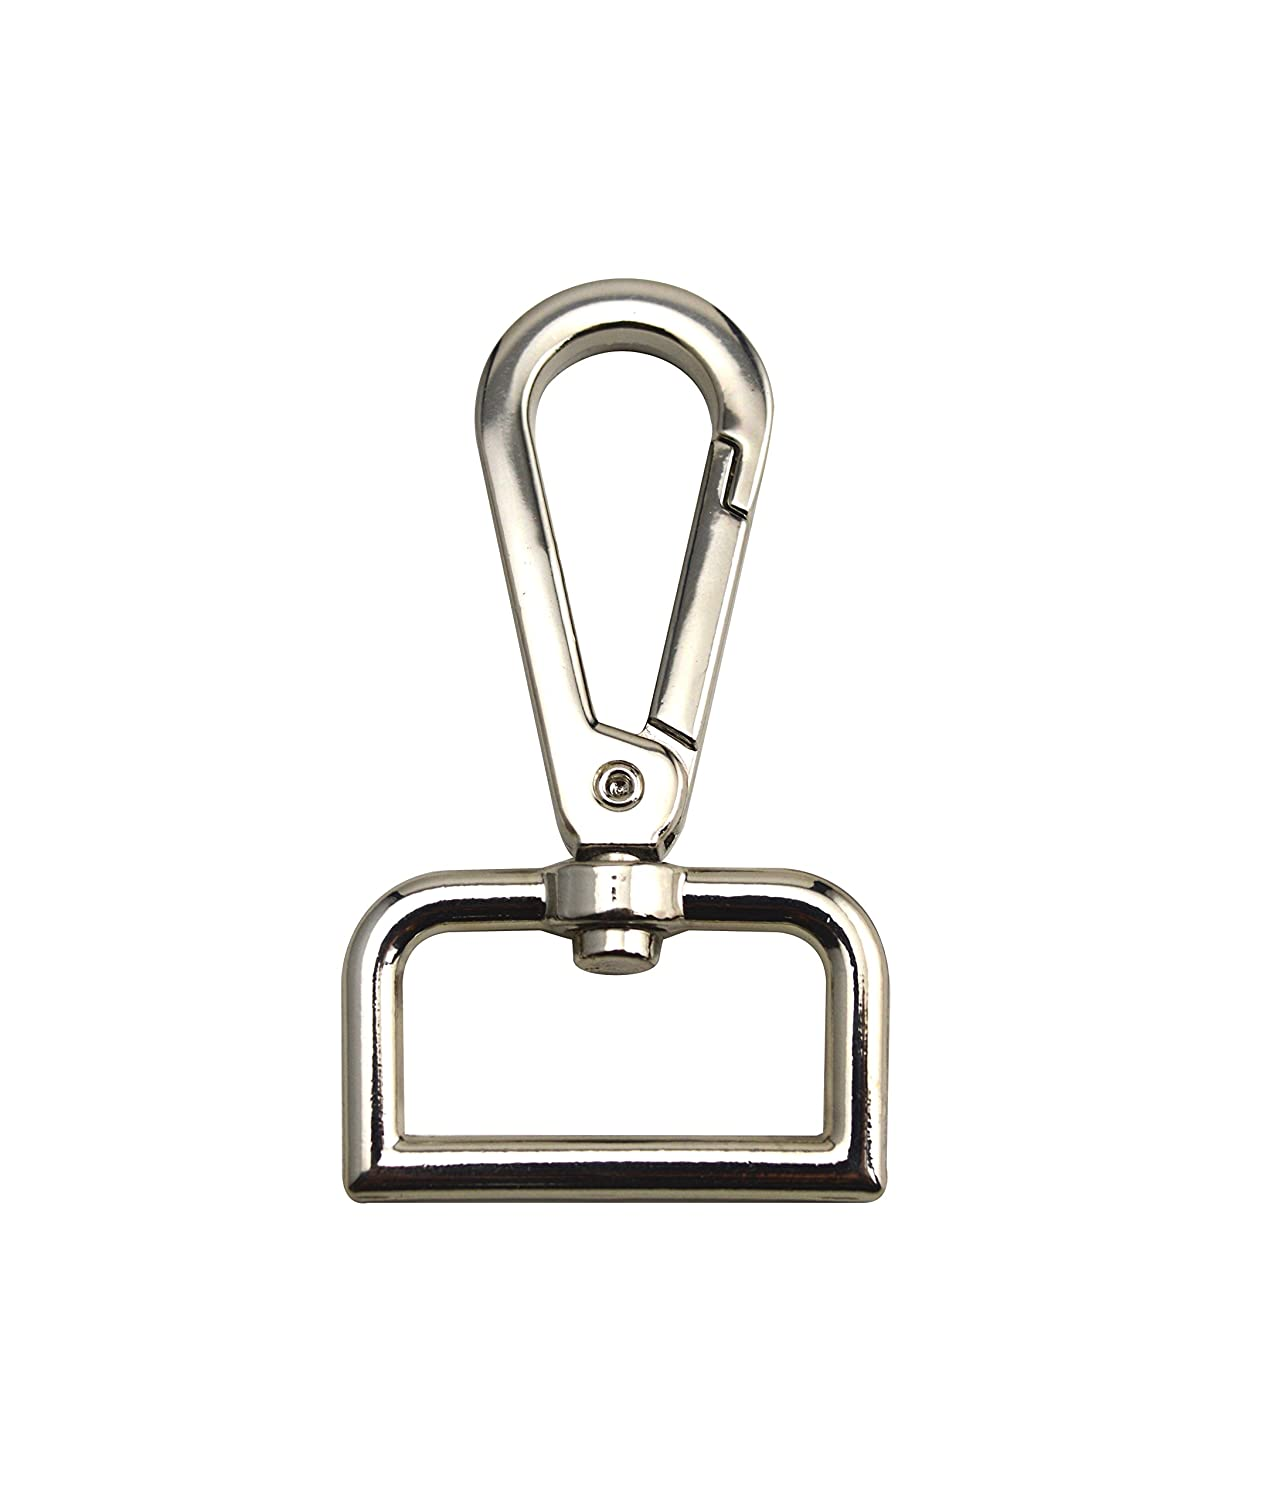 Wuuycoky Silvery 0.8 Inner Diameter D Ring Medium Surface Plate Buckle Lobster Clasps Swivel Snap Hooks Pack of 10